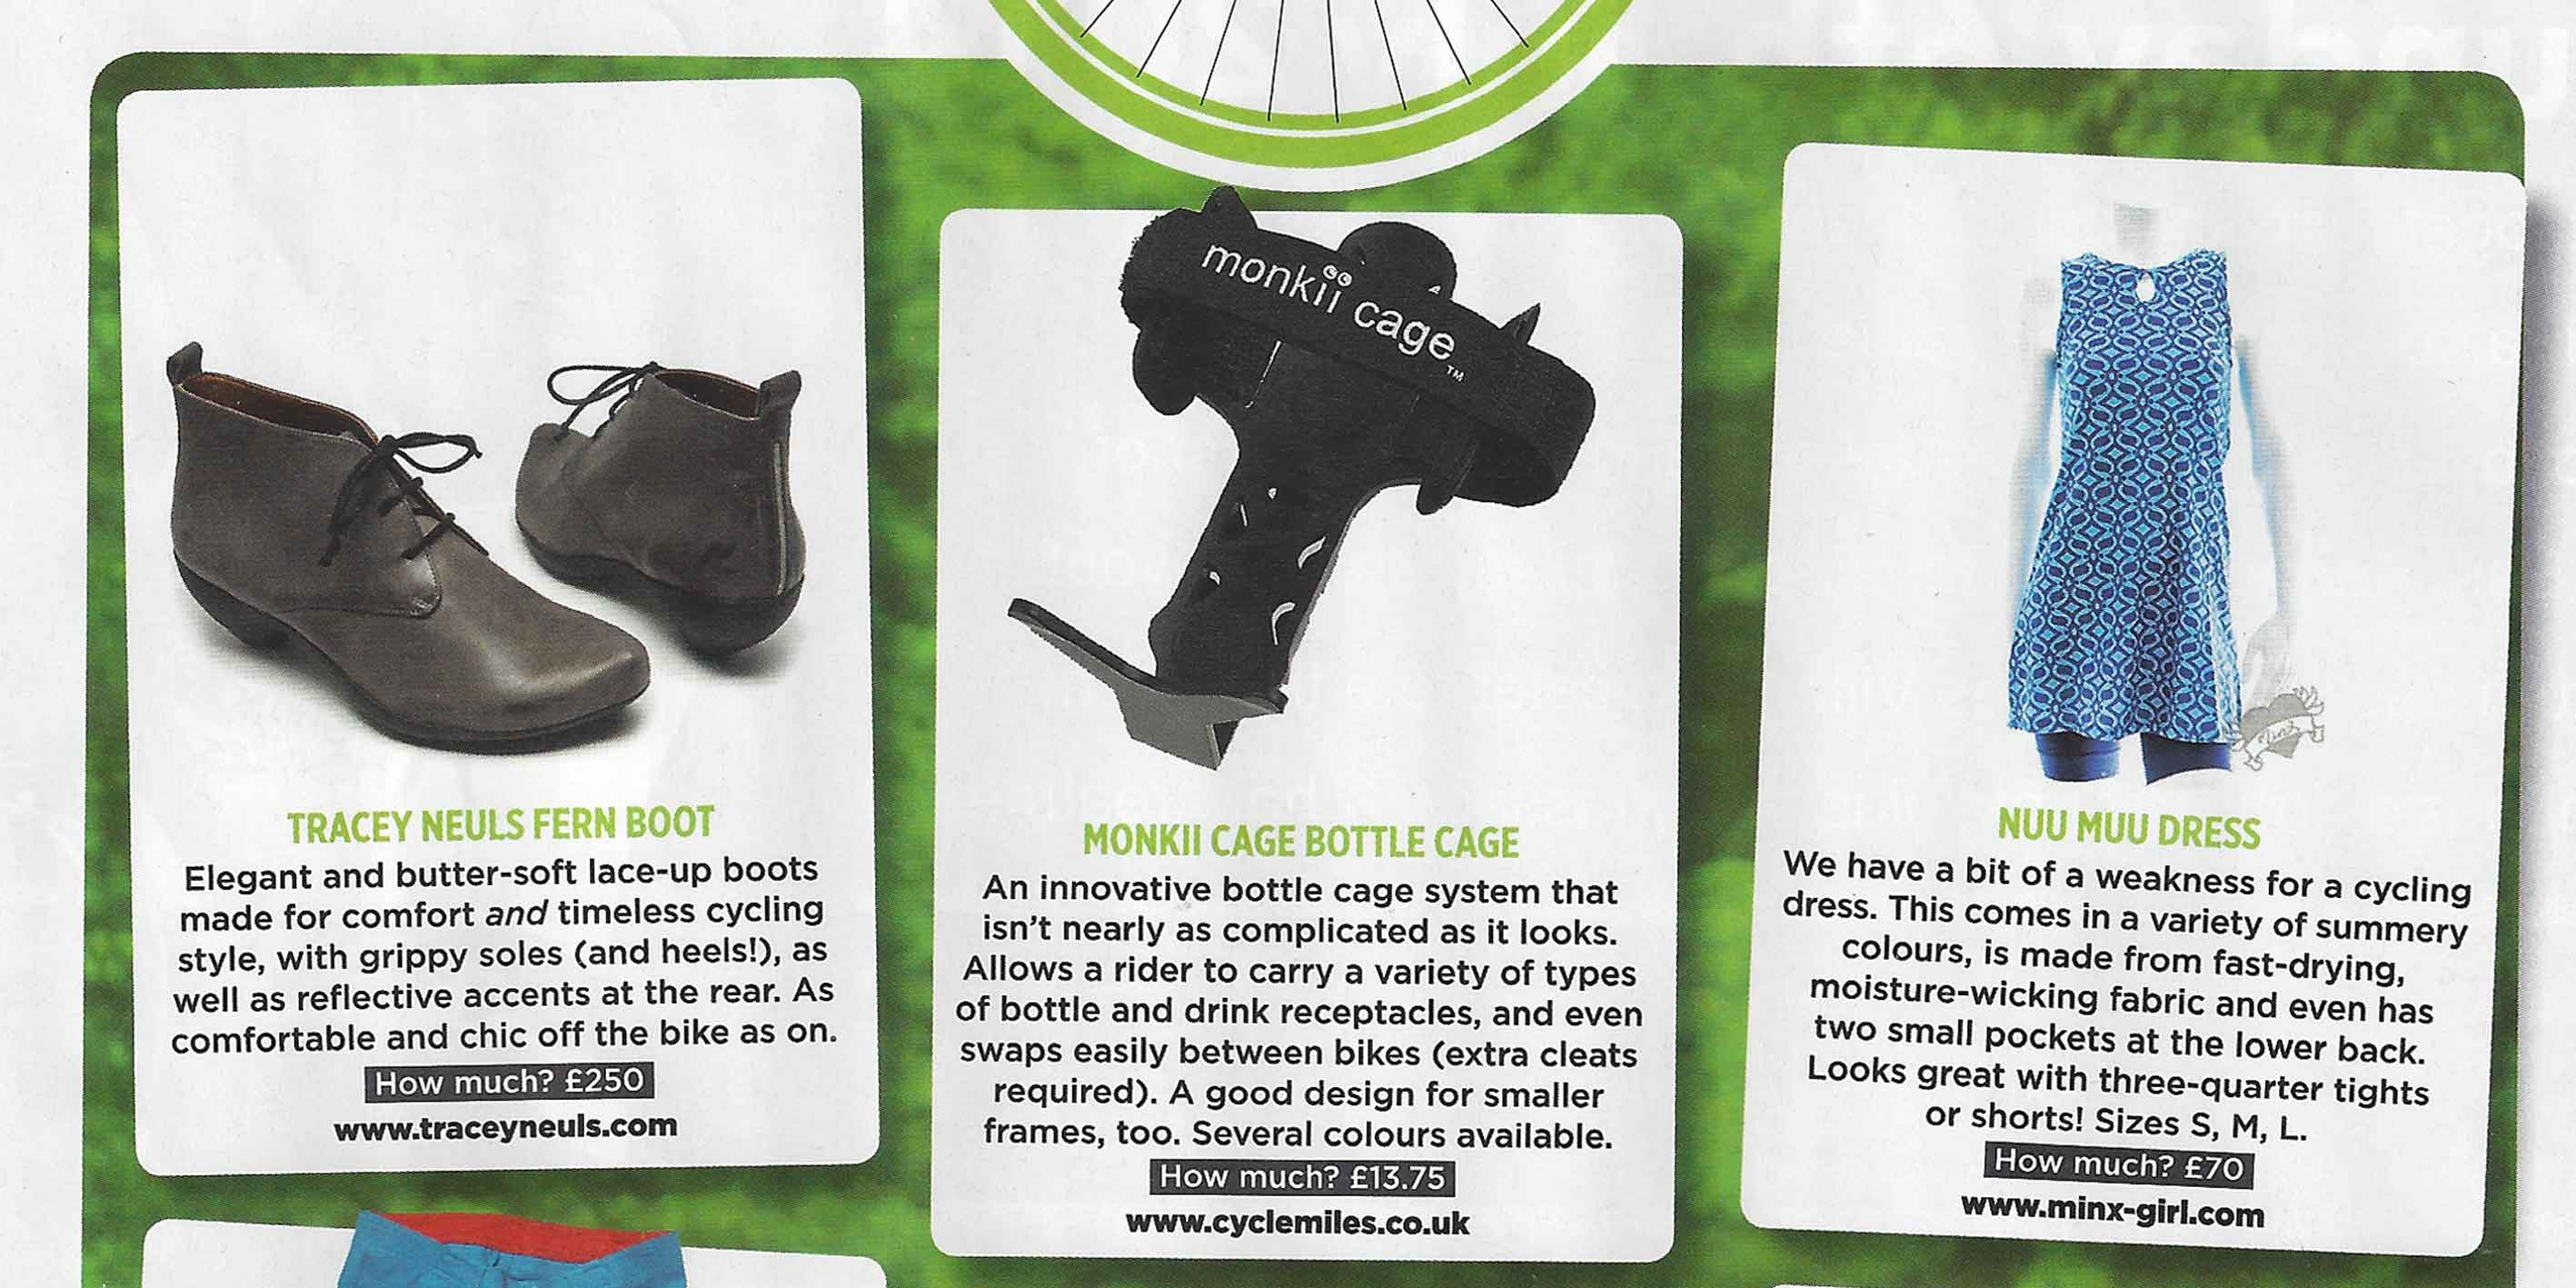 monkii cage Featured in Women's Cycling Magazine